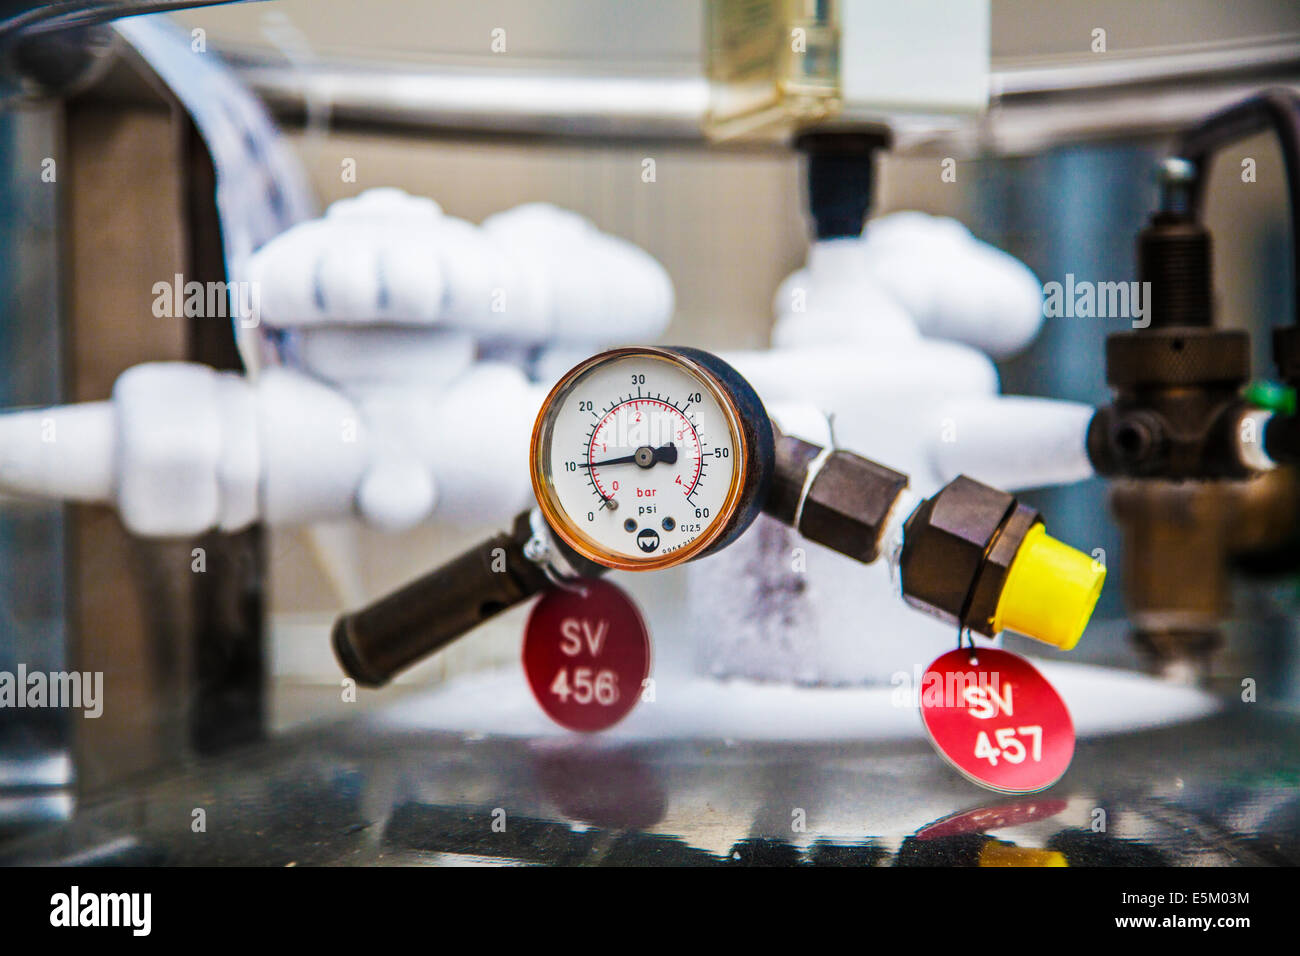 A pressure gauge in a science research laboratory. - Stock Image